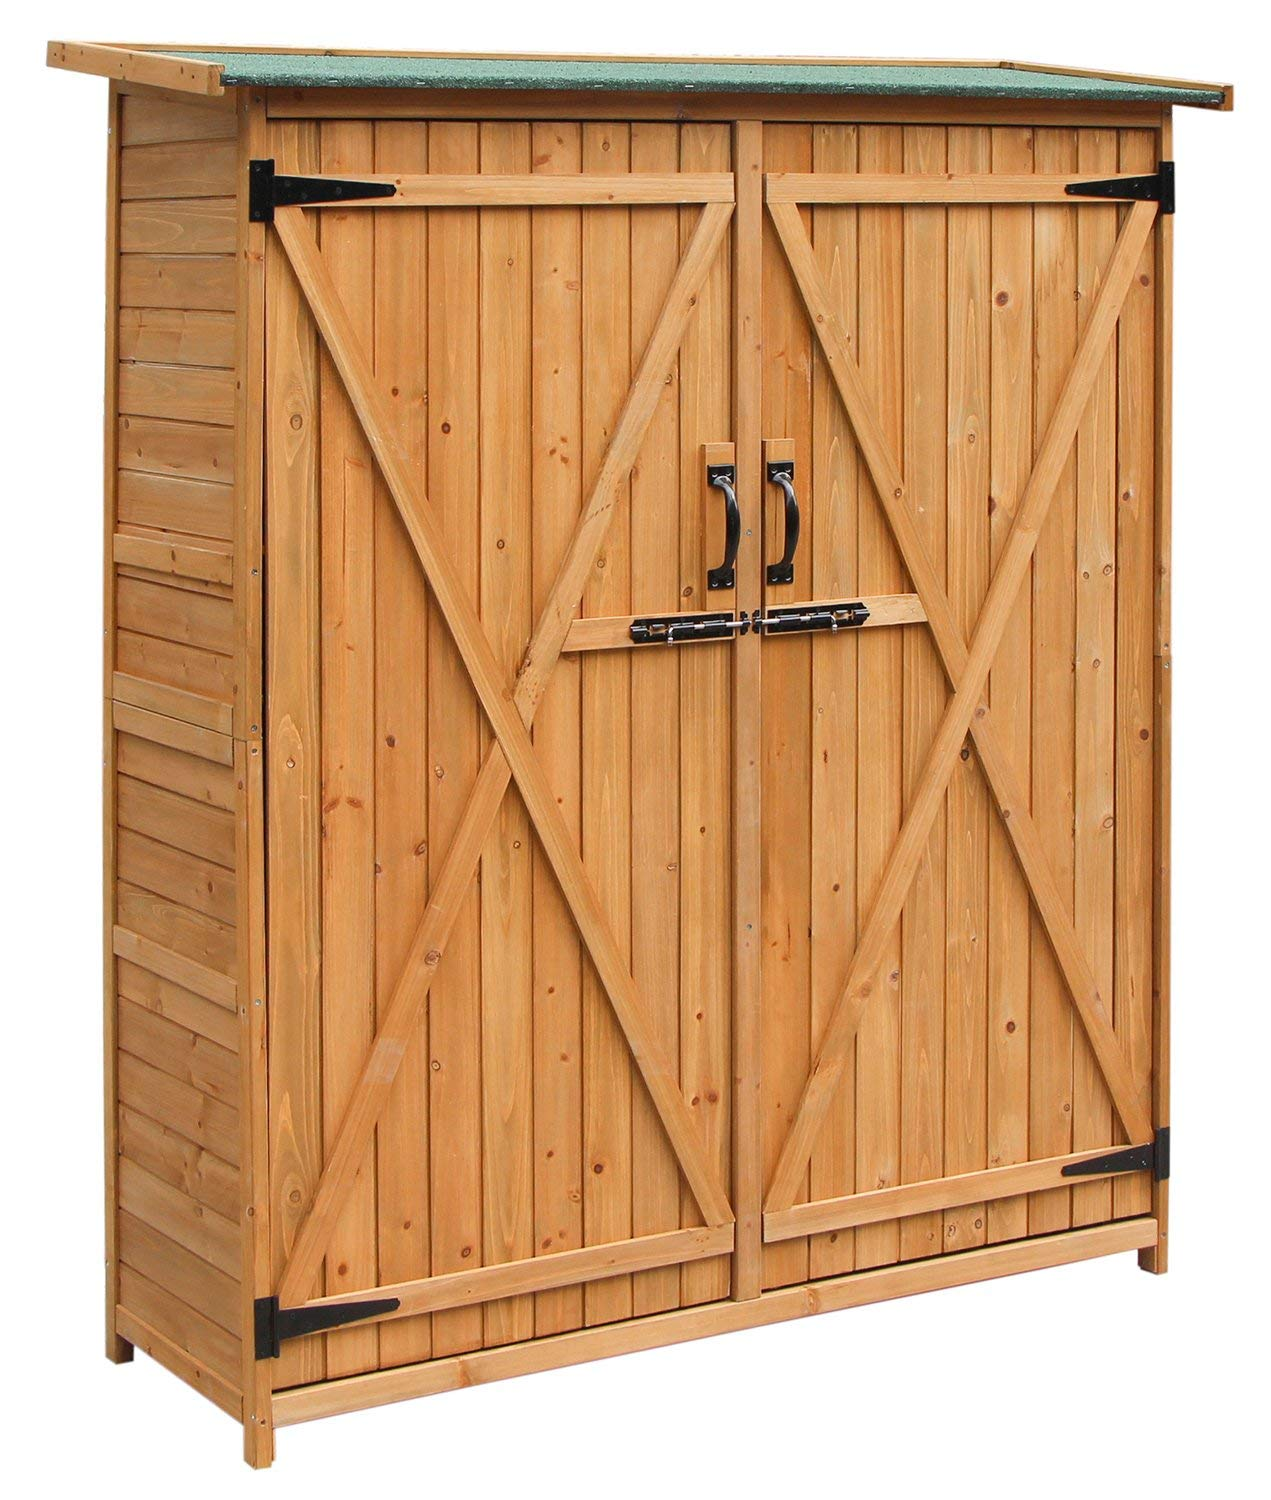 wood storage sheds amazon.com : merax wooden outdoor garden shed with fir wood medium storage KSIDQMB